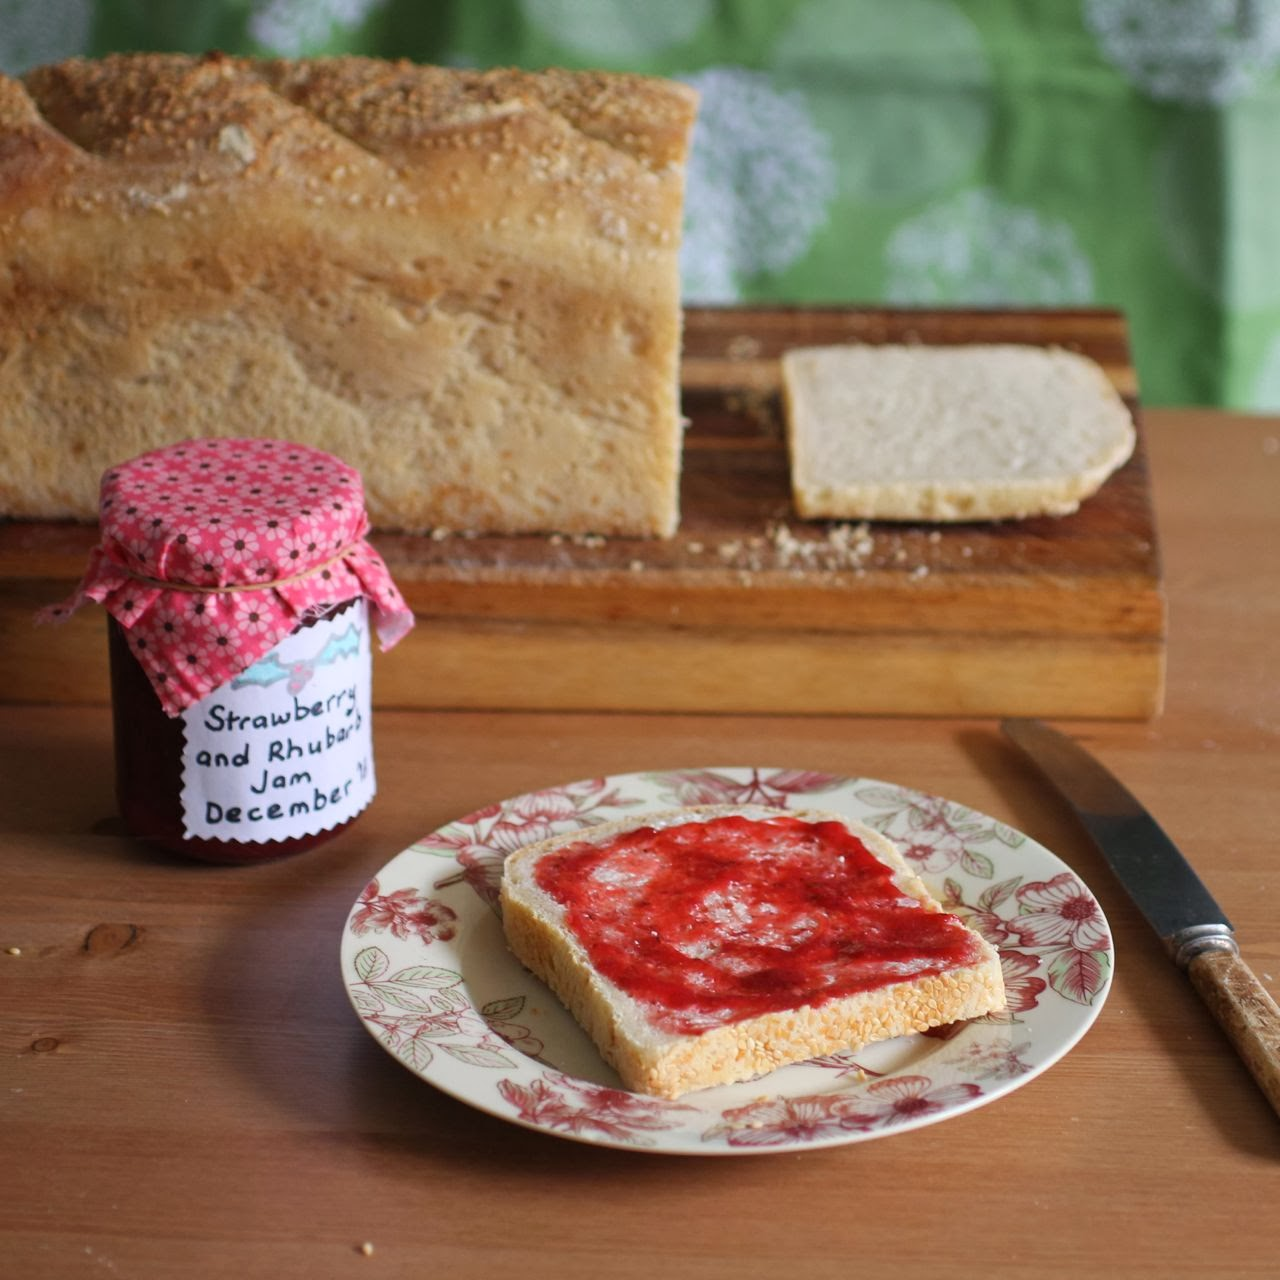 green gourmet giraffe rhubarb and strawberry jam and decorating the